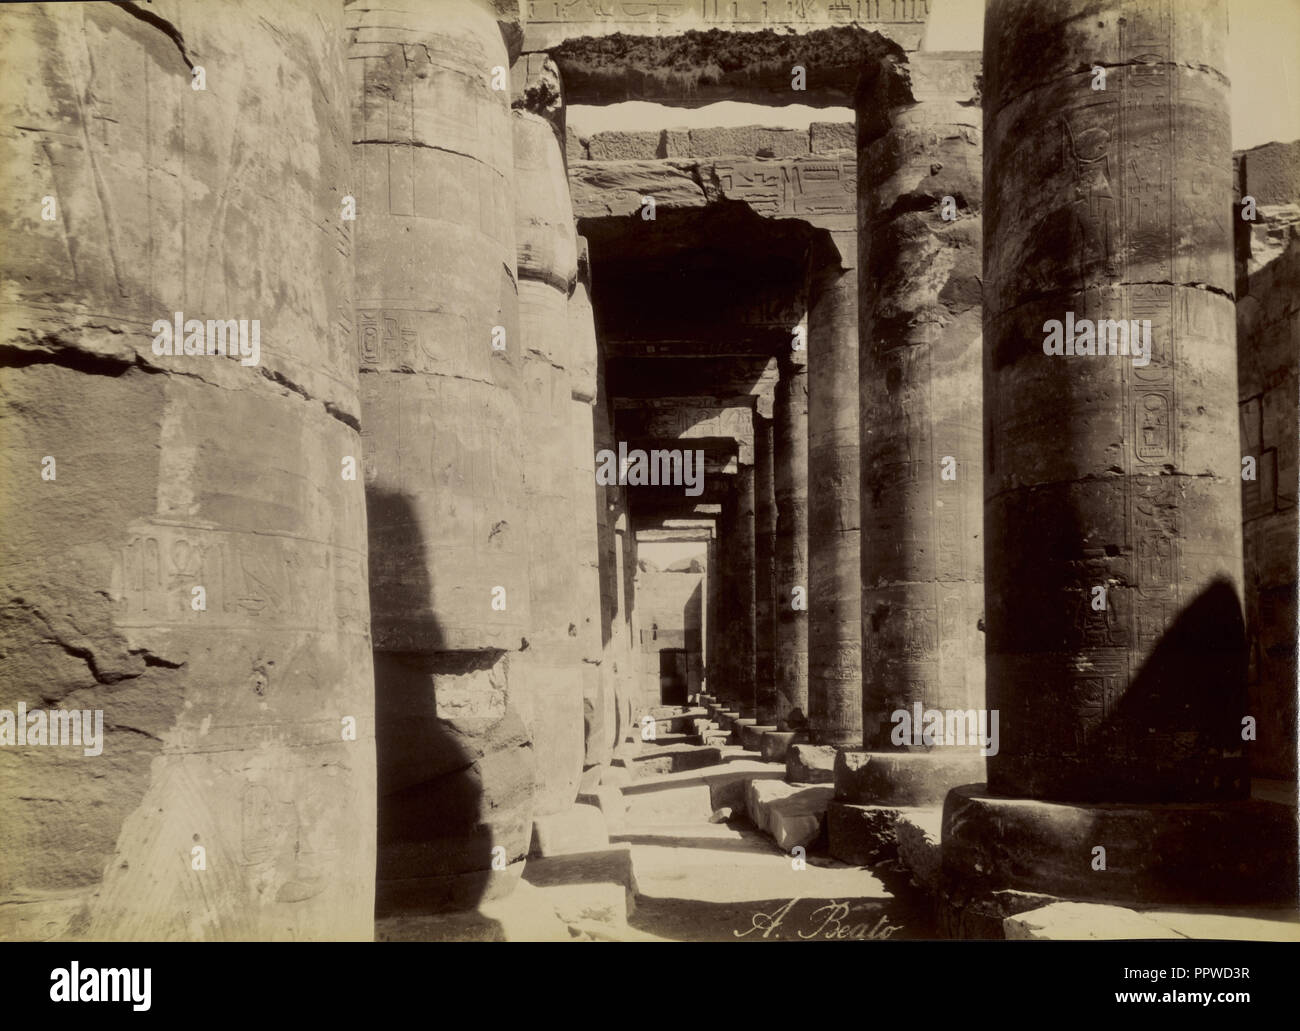 Abydos, Exterior of the Temple , Abydos, Exterieur du Temple; Antonio Beato, English, born Italy, about 1835 - 1906, 1880 - Stock Image